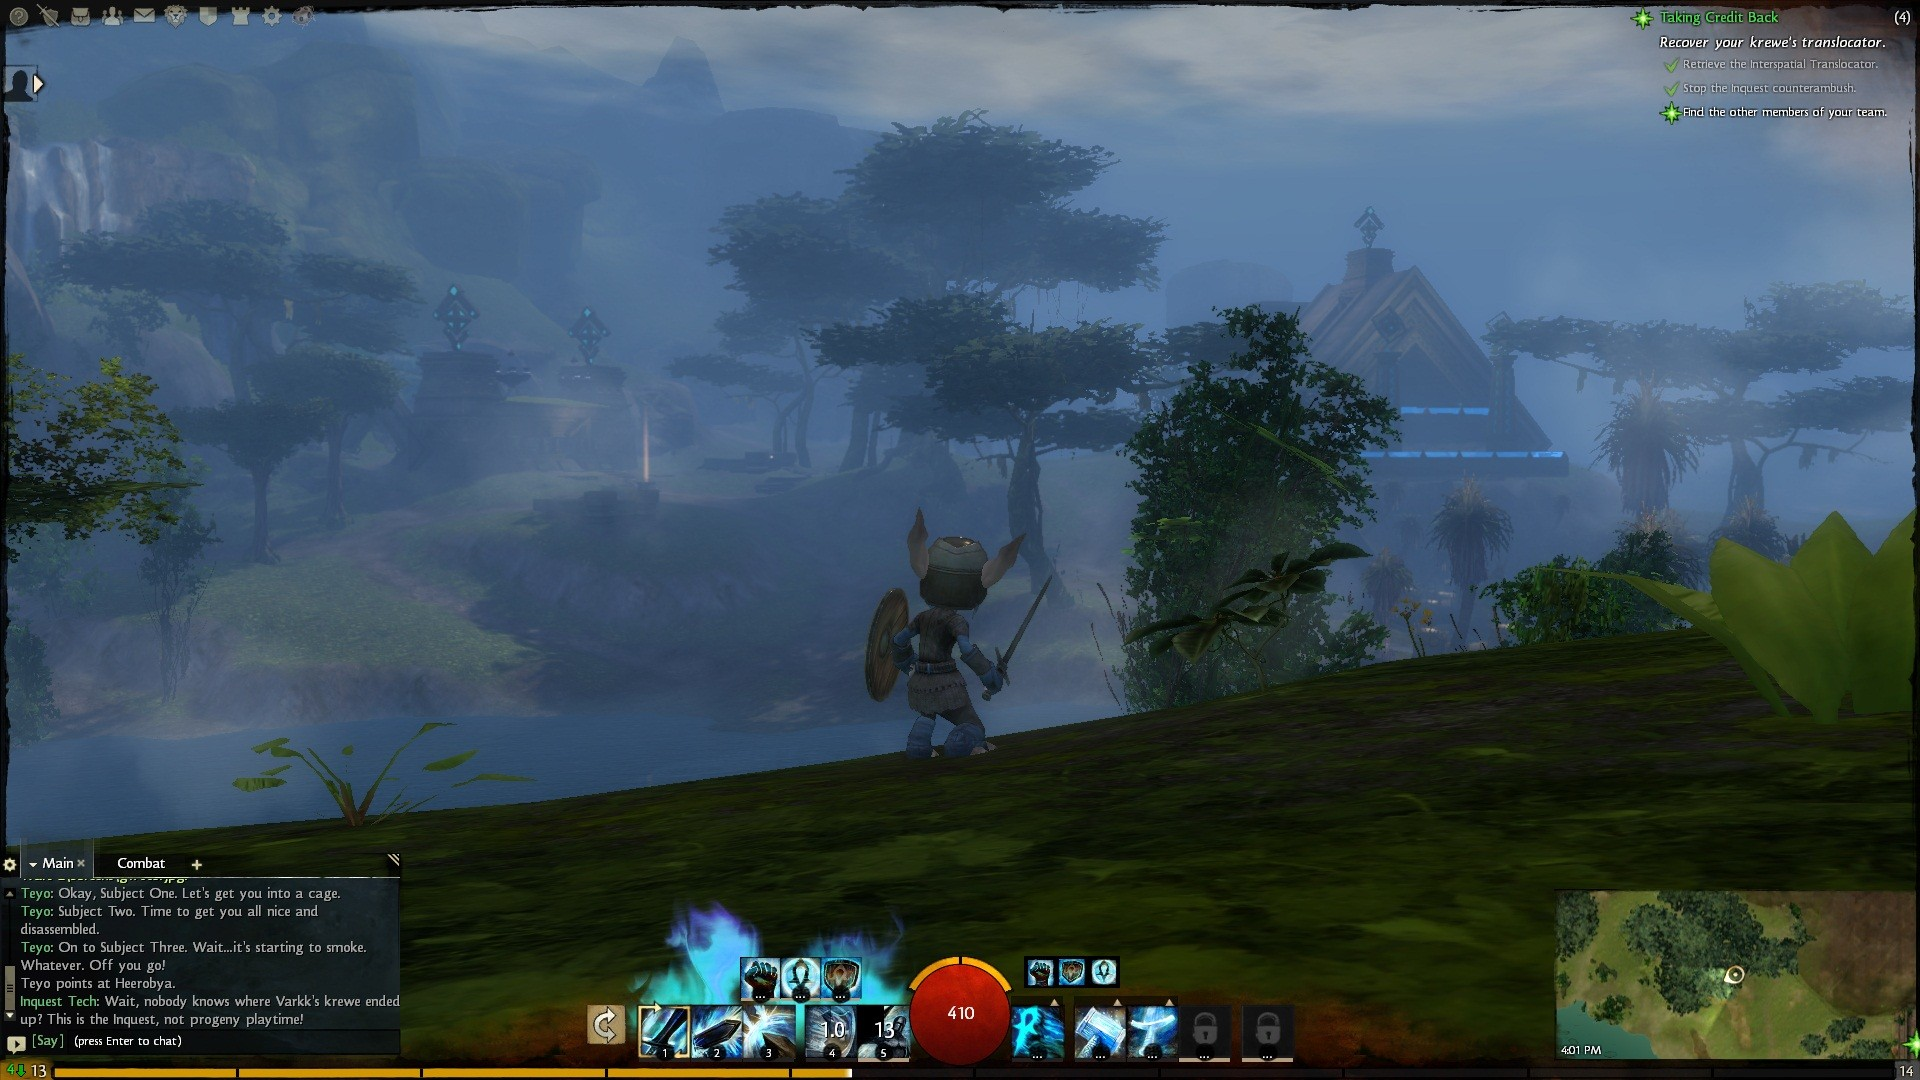 Guild Wars 2 - Foggy.